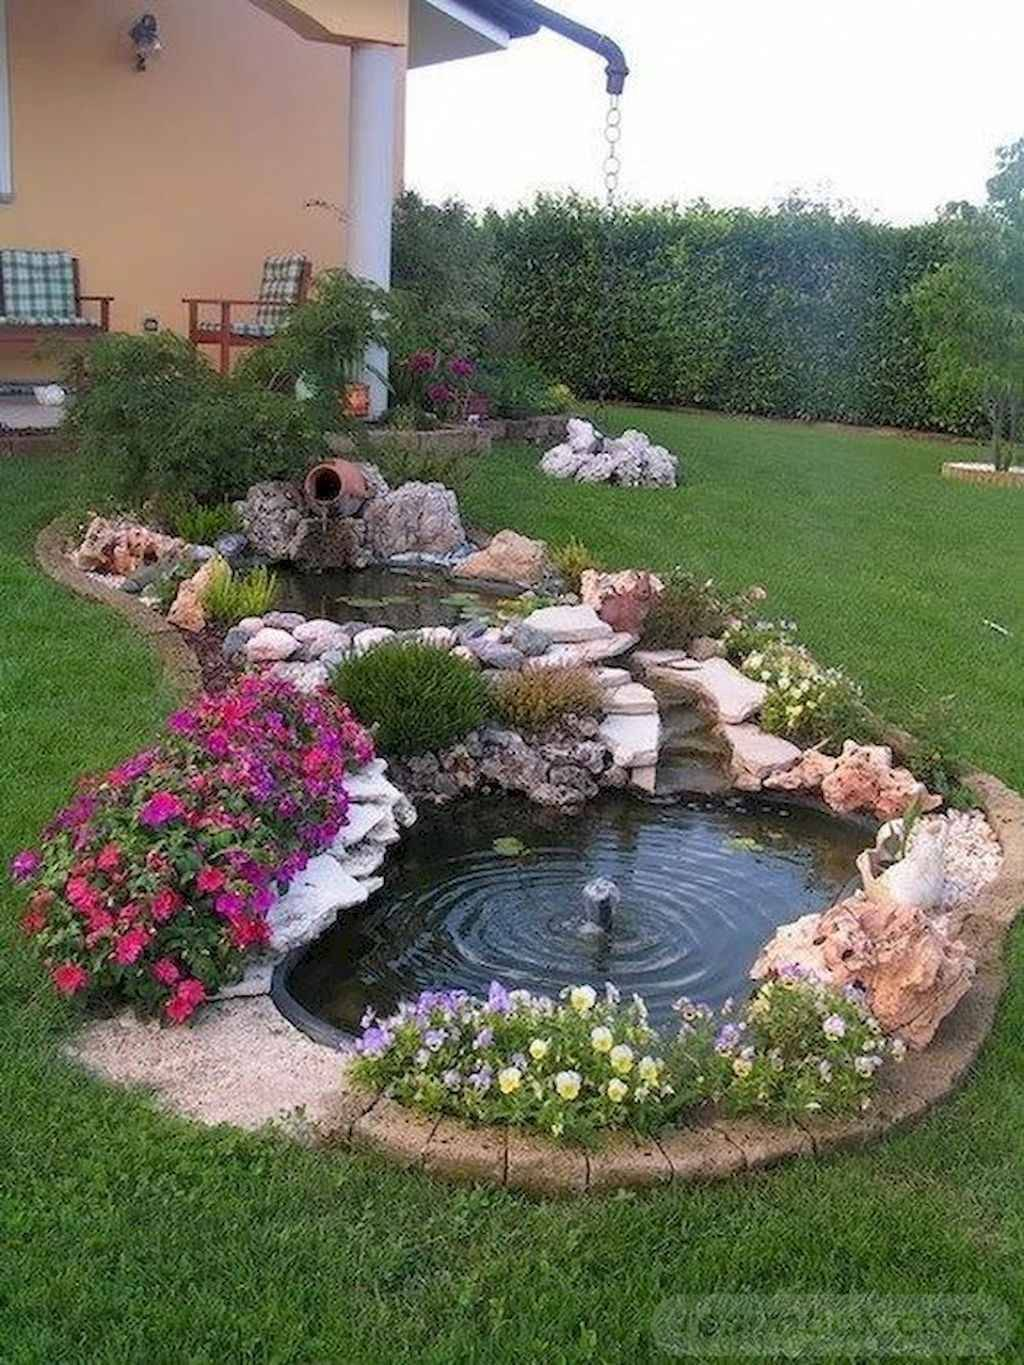 amazing garden ideas-757097387339607148